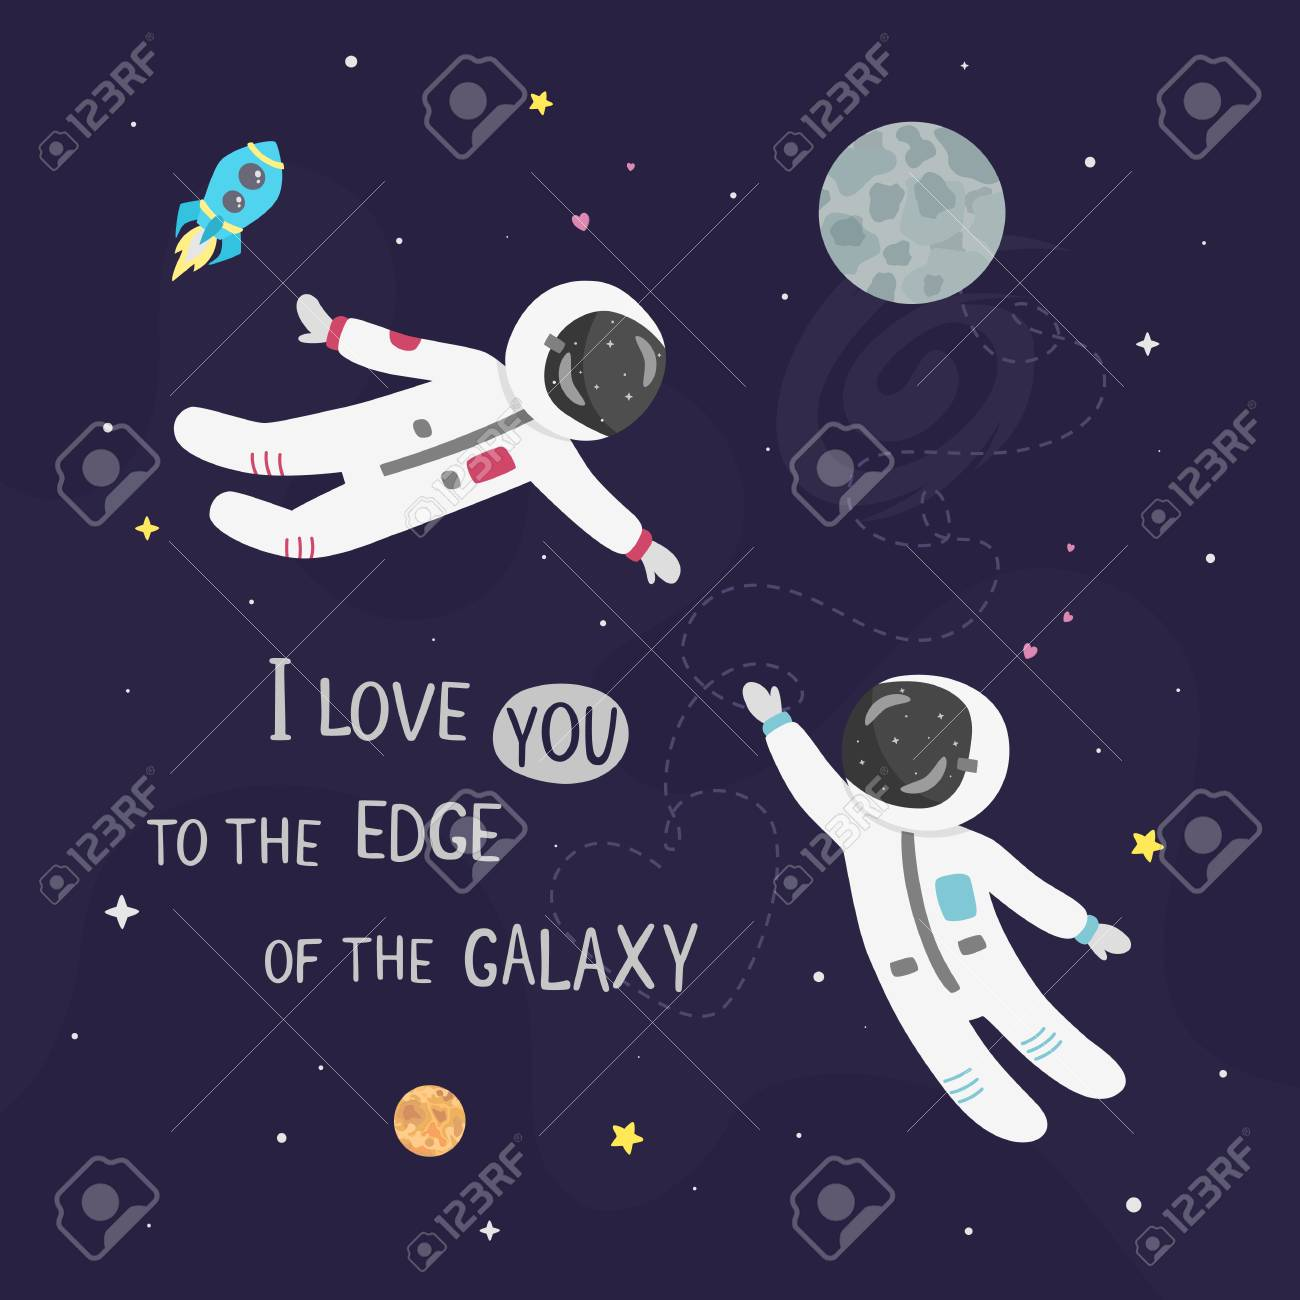 Space love vector illustration. Boy astronaut and girl astronaut fly to each other. I love you to the edge of the galaxy card. - 114979846